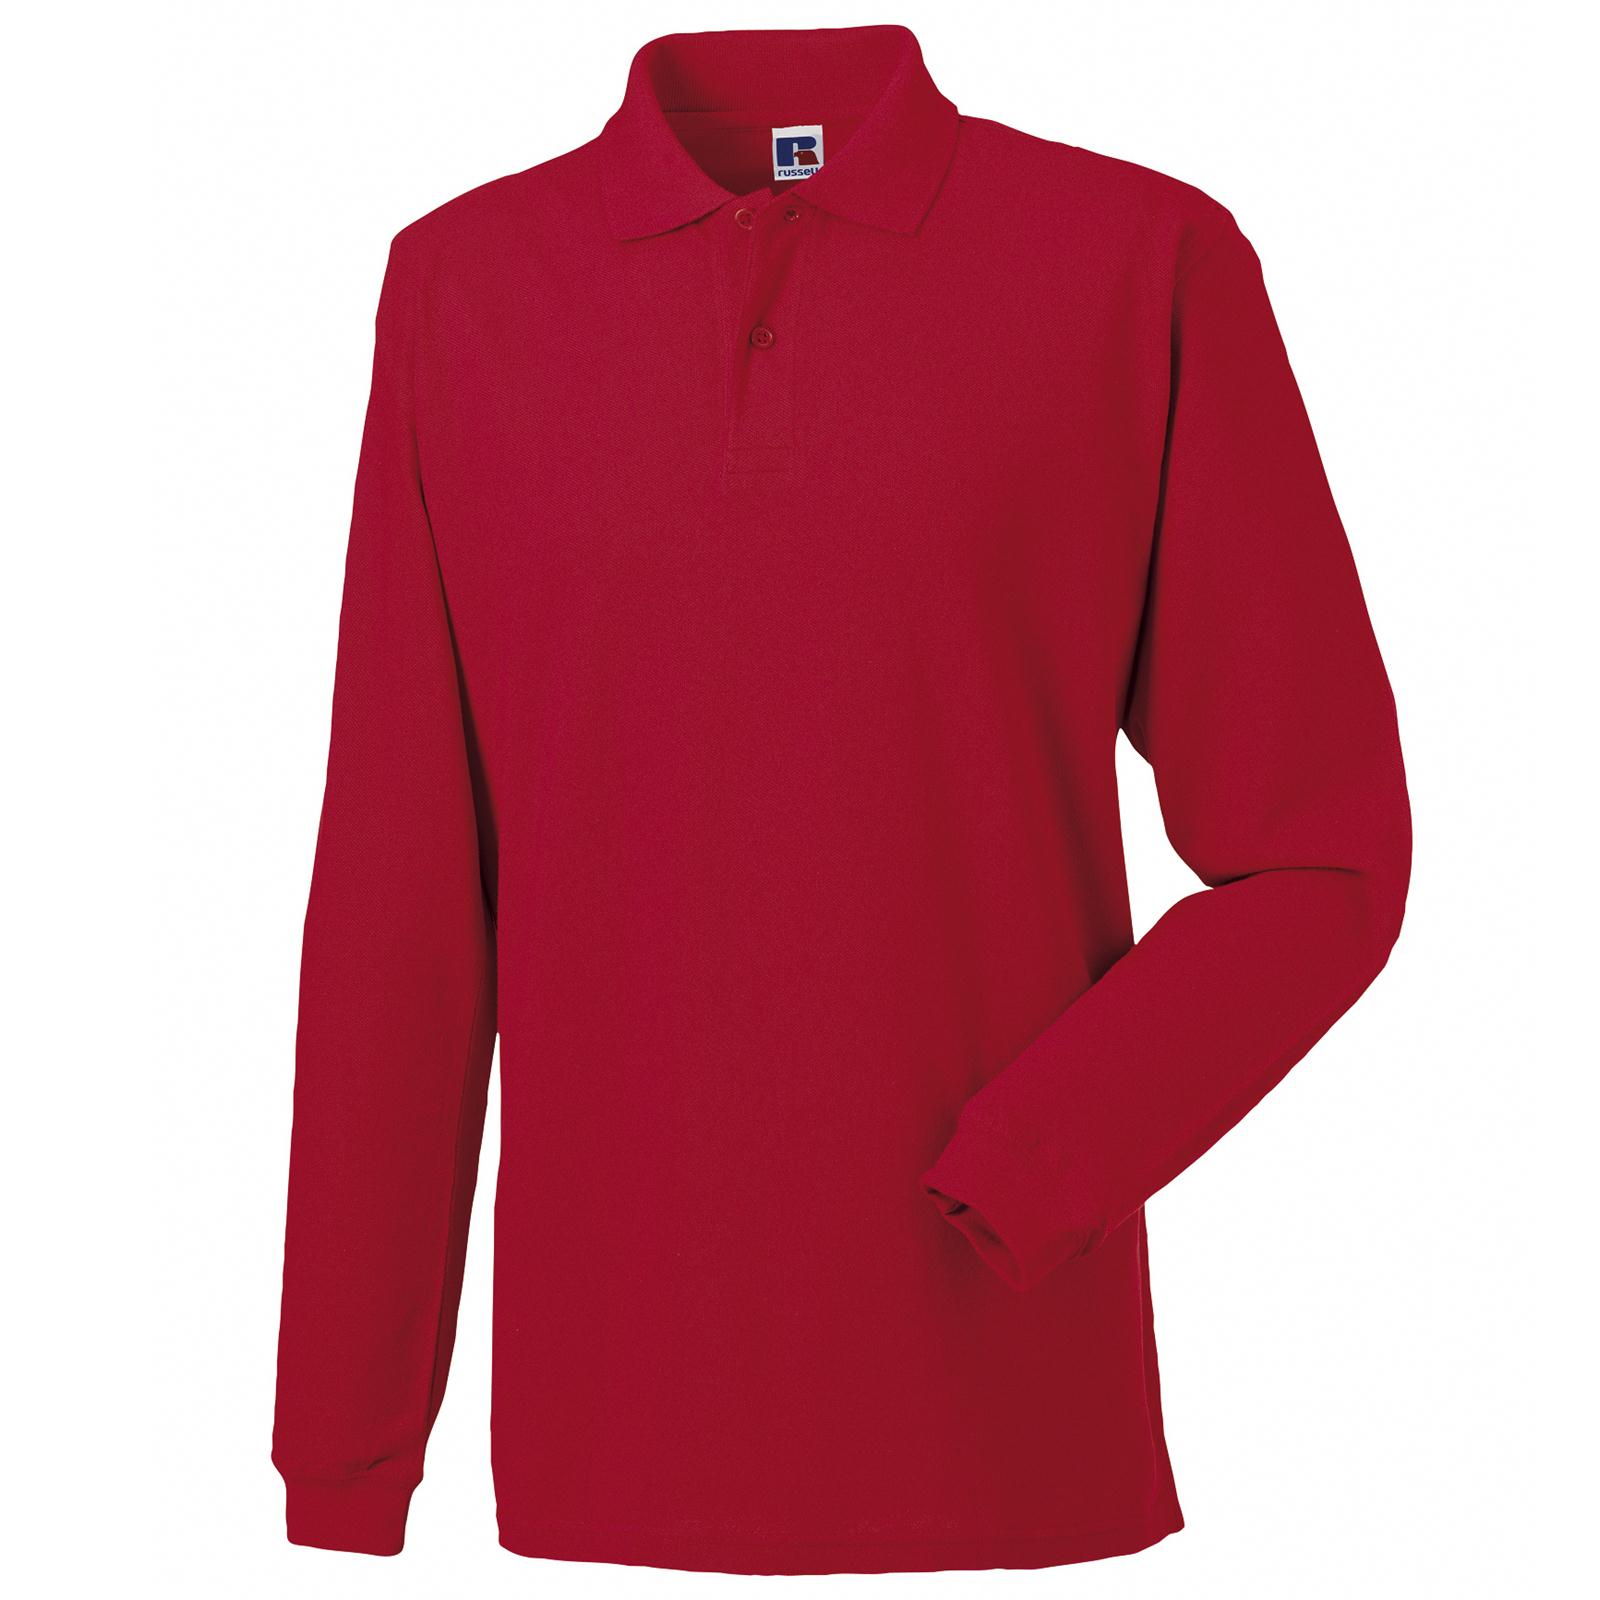 New Russell Long Sleeve 100 Cotton Pique Polo Shirt In 5